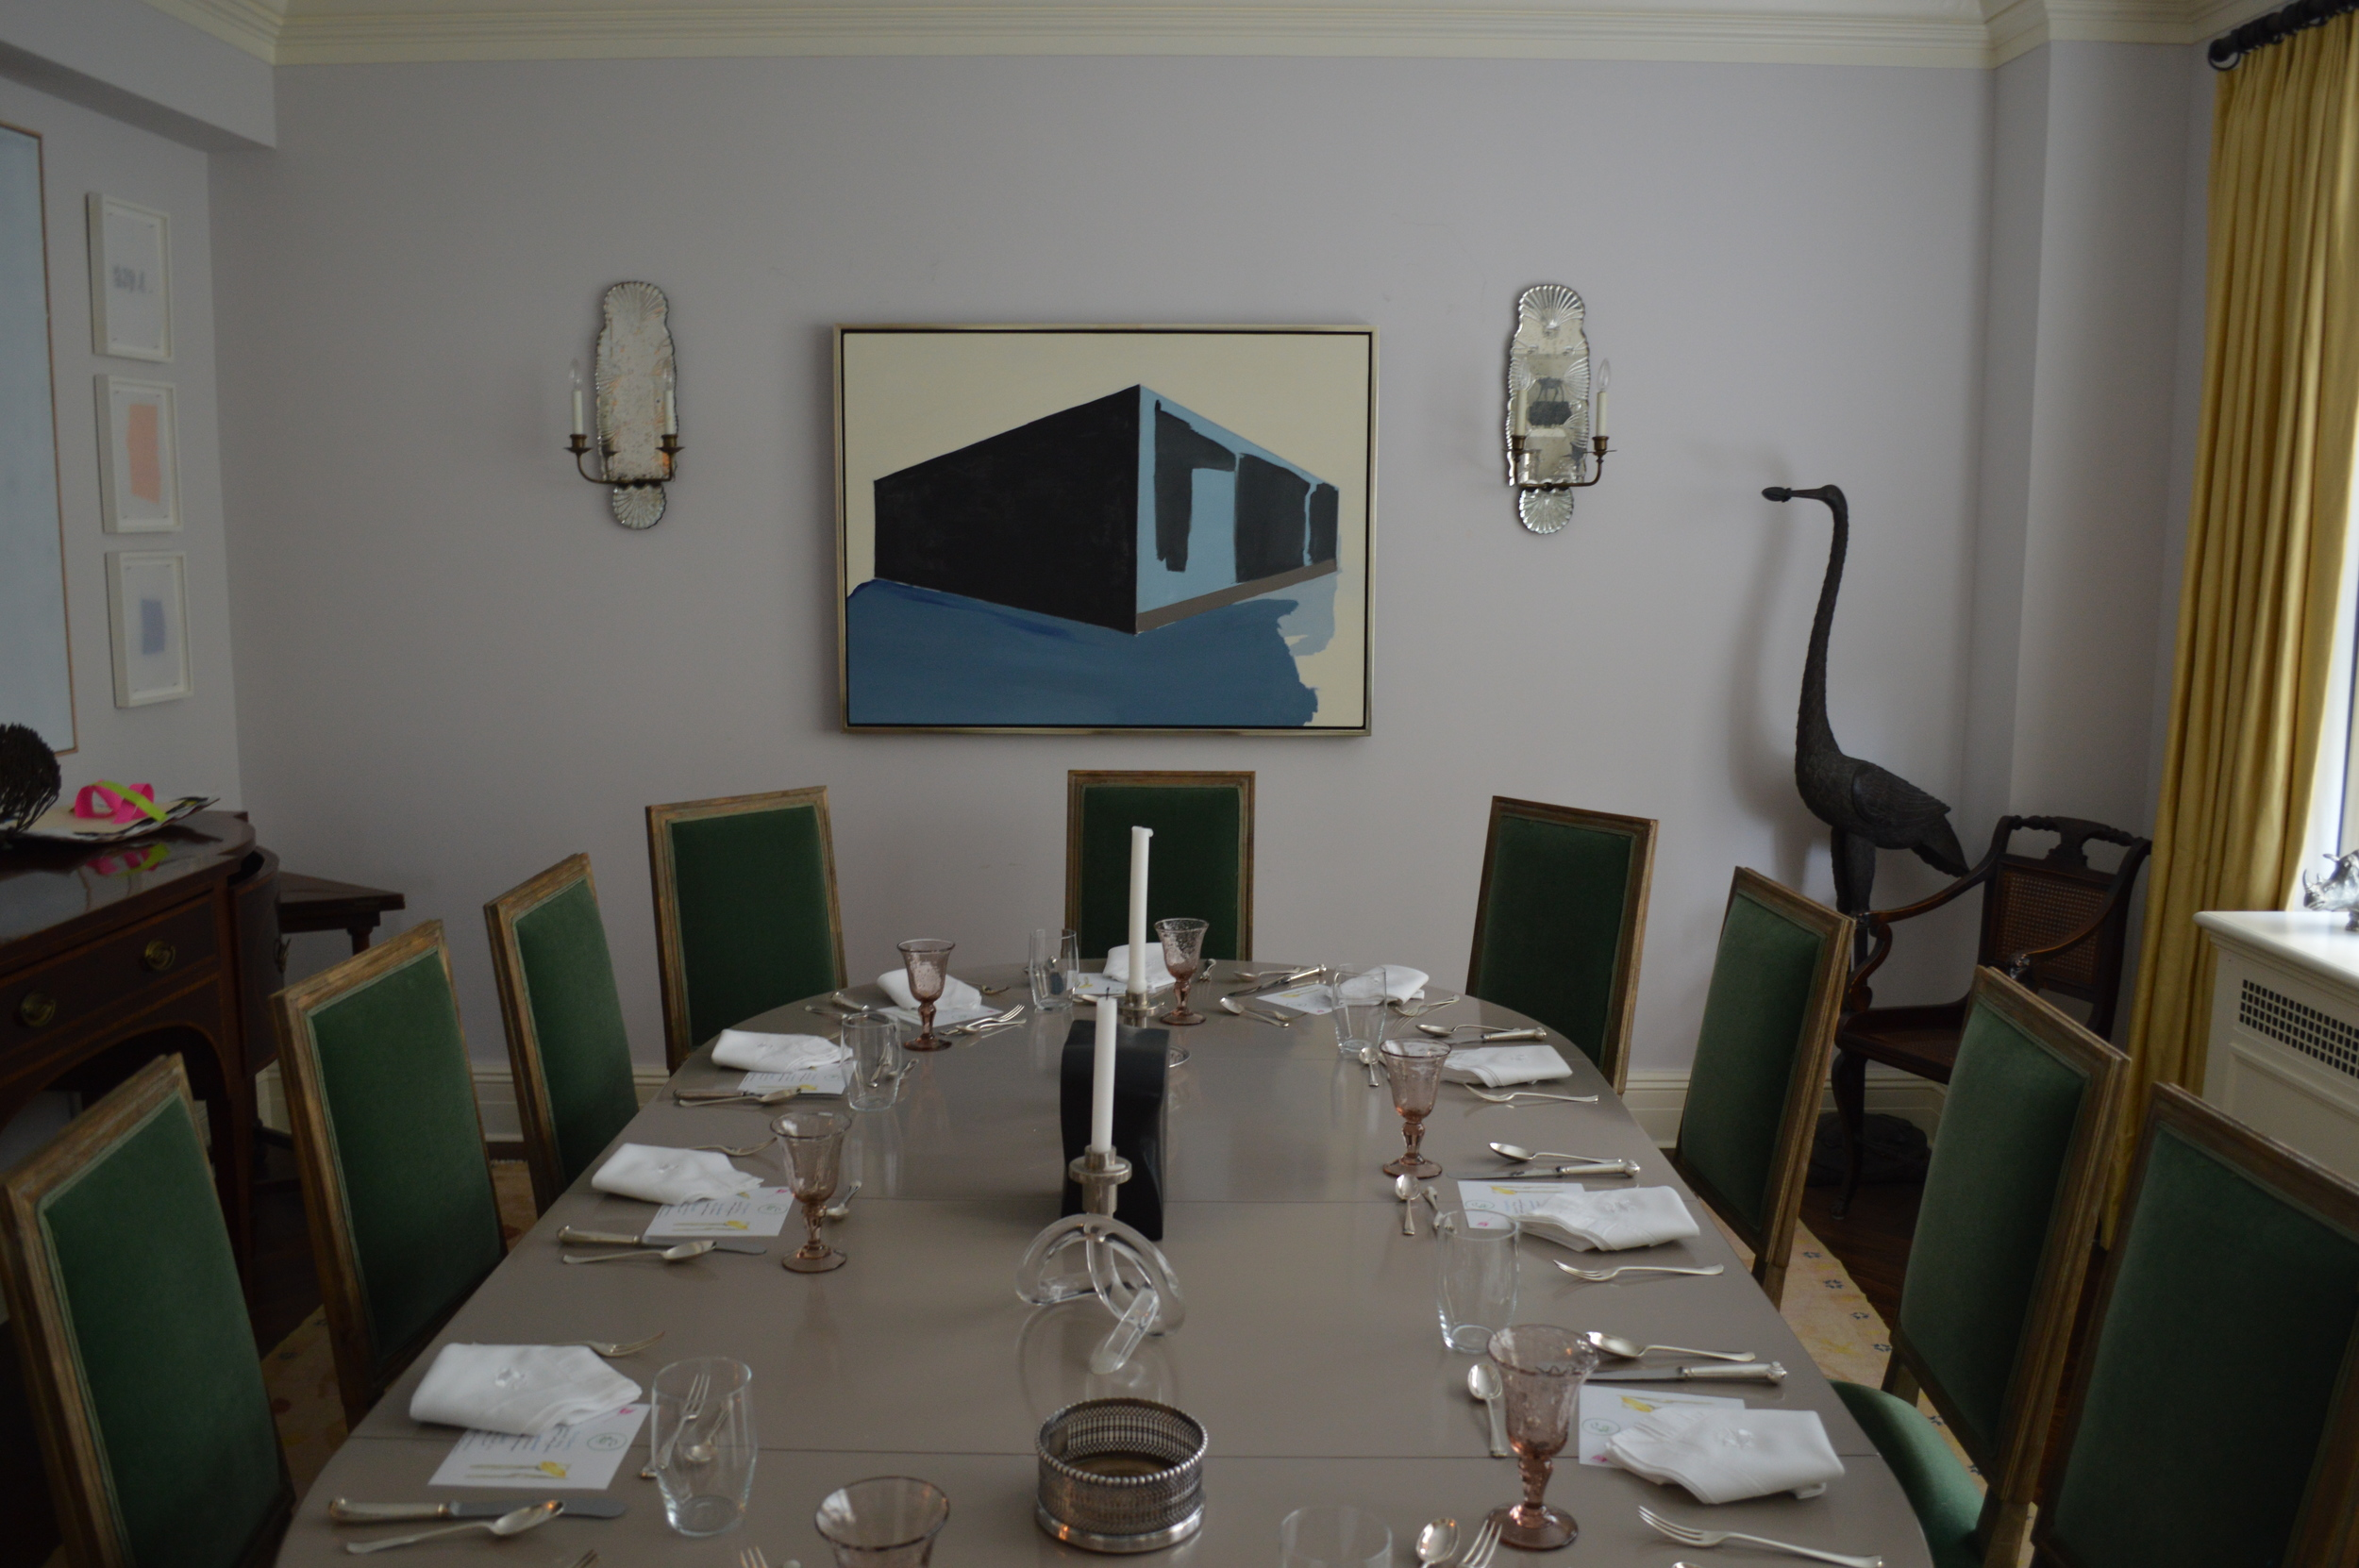 The table set for 12 members and guests, surrounded by painting and sculpture.